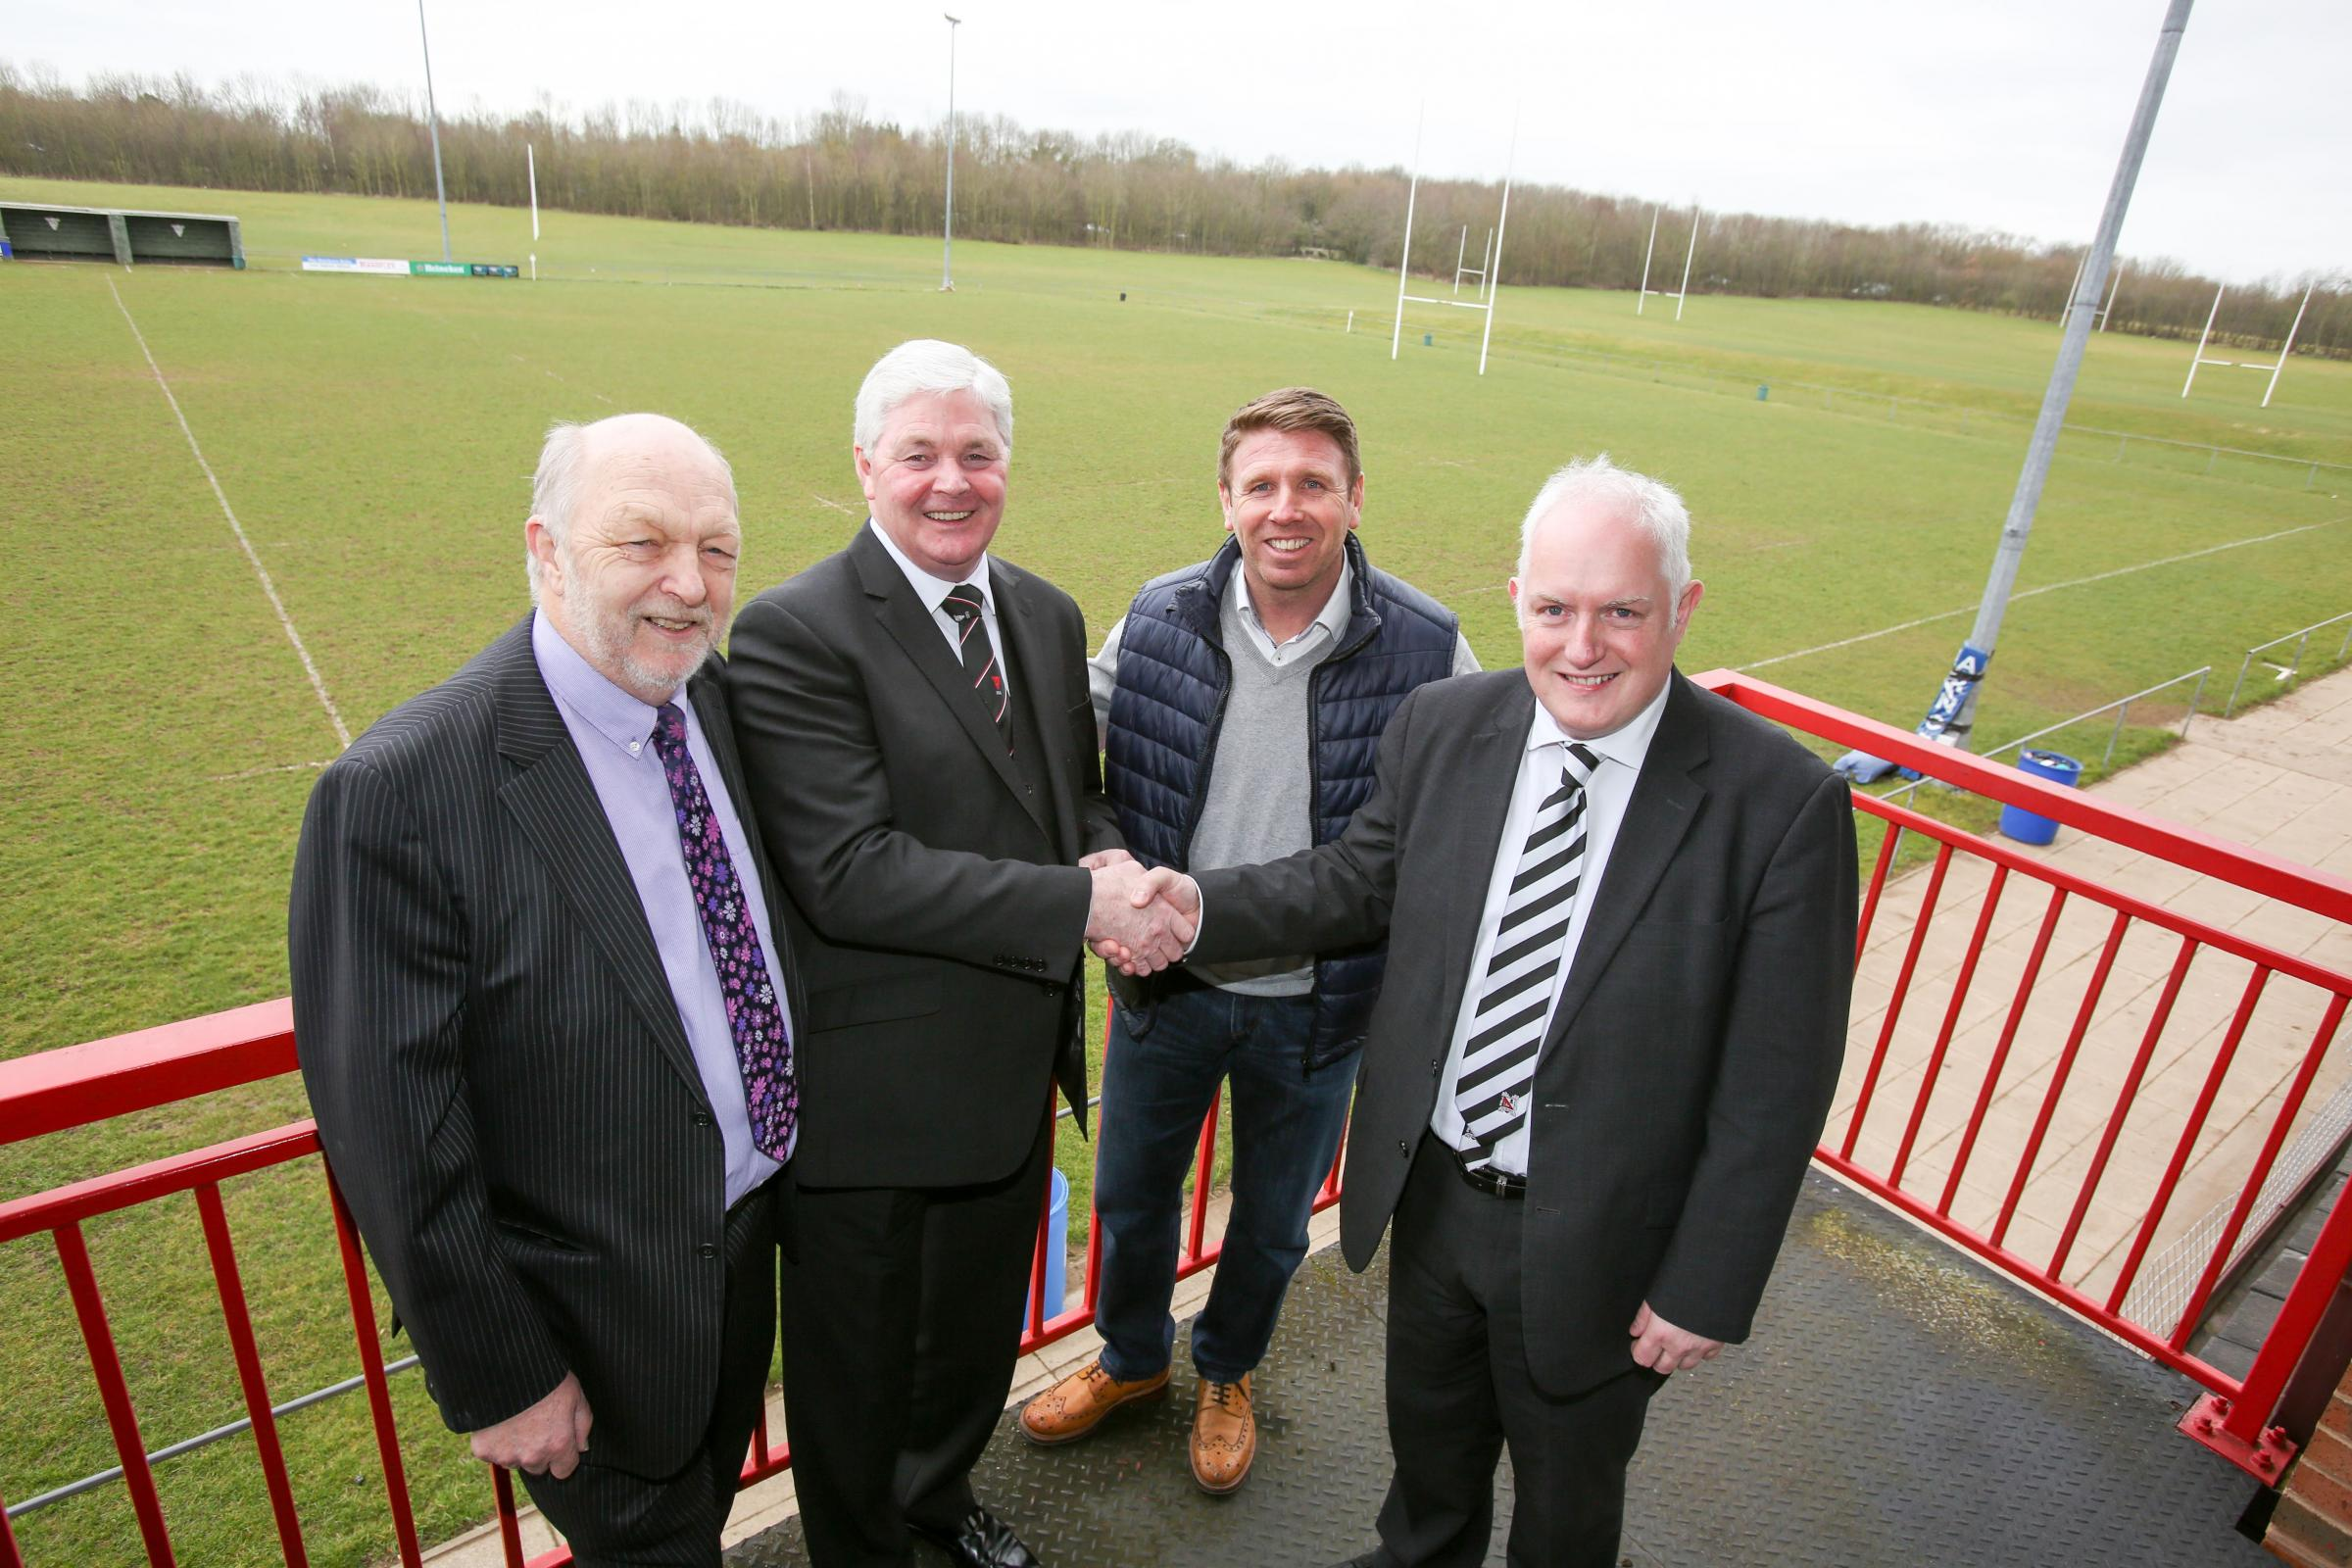 COMING HOME: Architect Malcolm Cundick Mike Wilkinson, chairman of Darlington RFC, Martin Gray, Darlington 1883 manager and John Tempest, corporate director of Darlington 1883 at Blackwell Meadows to announce that the club will play there next season